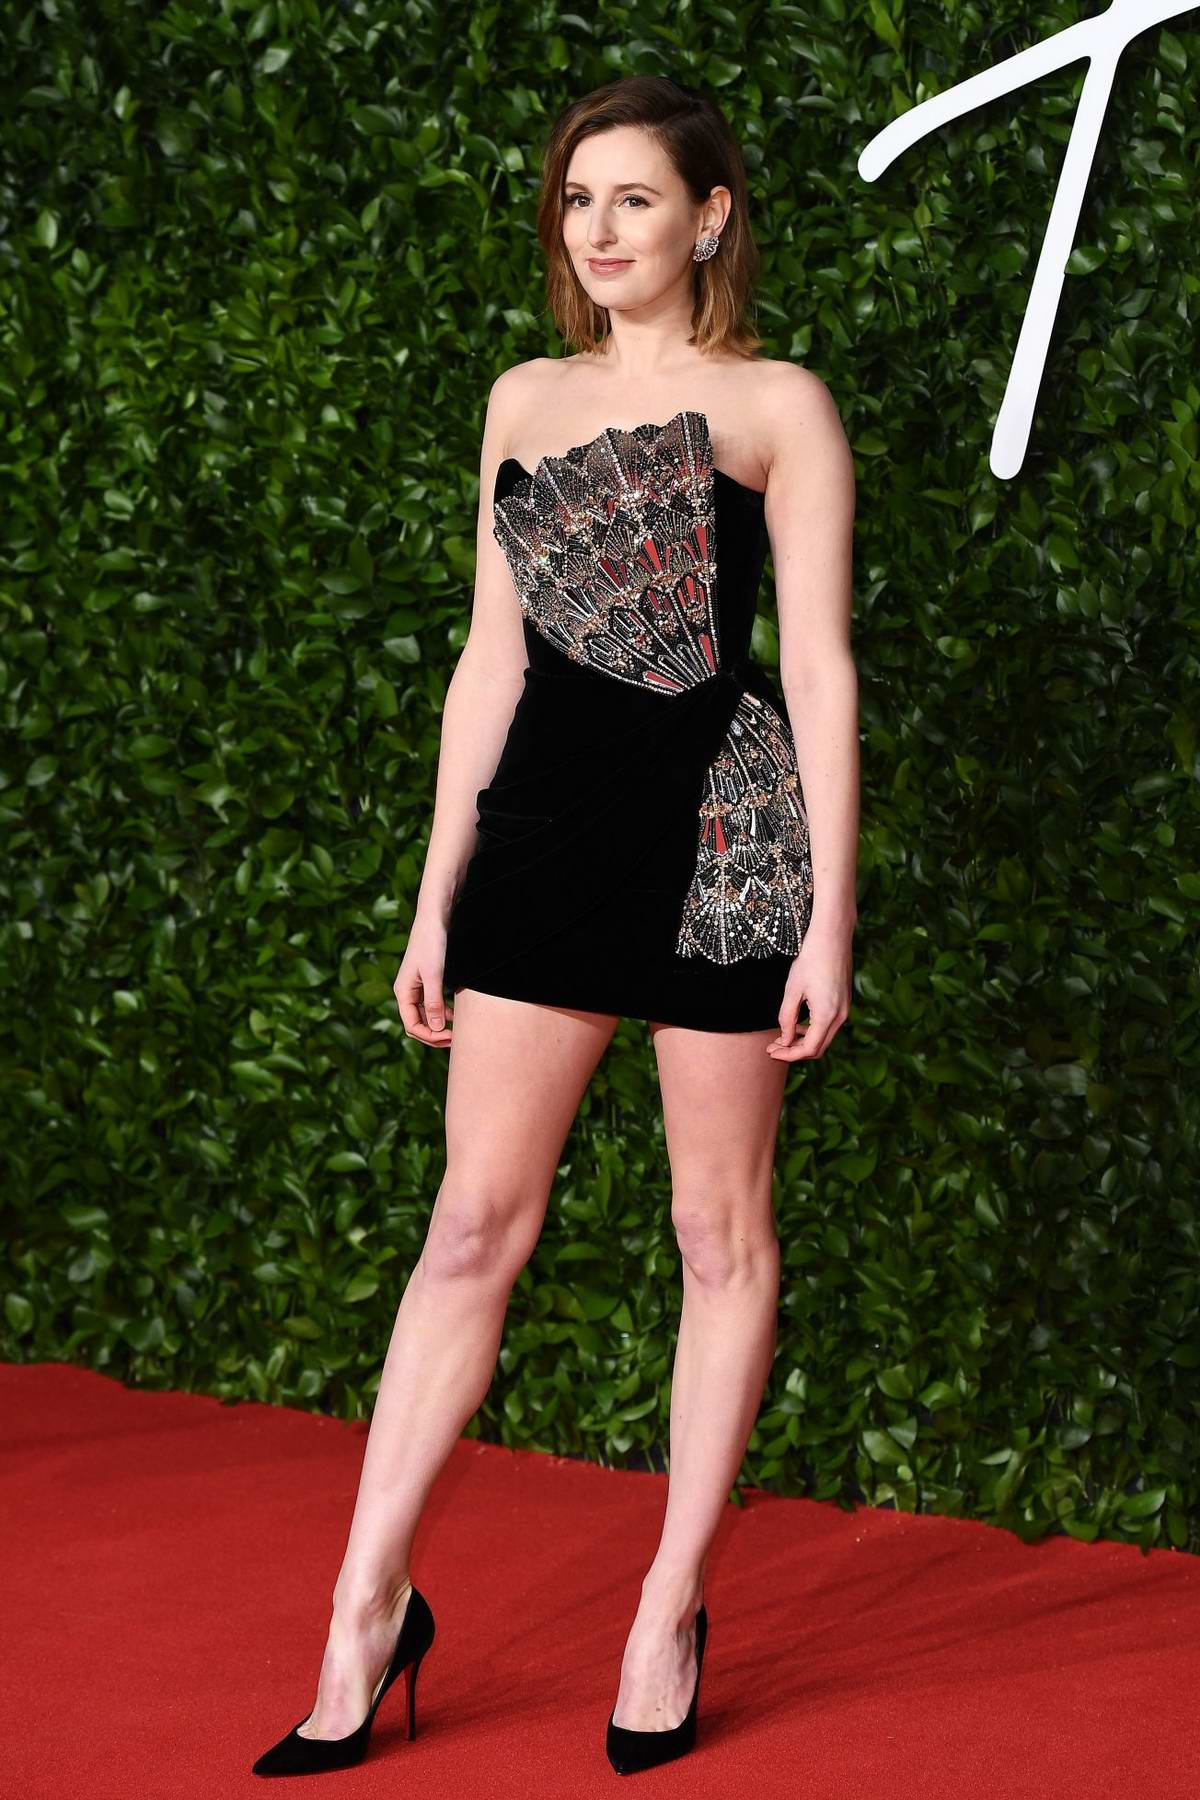 Laura Carmichael attends The Fashion Awards 2019 held at Royal Albert Hall in London, UK